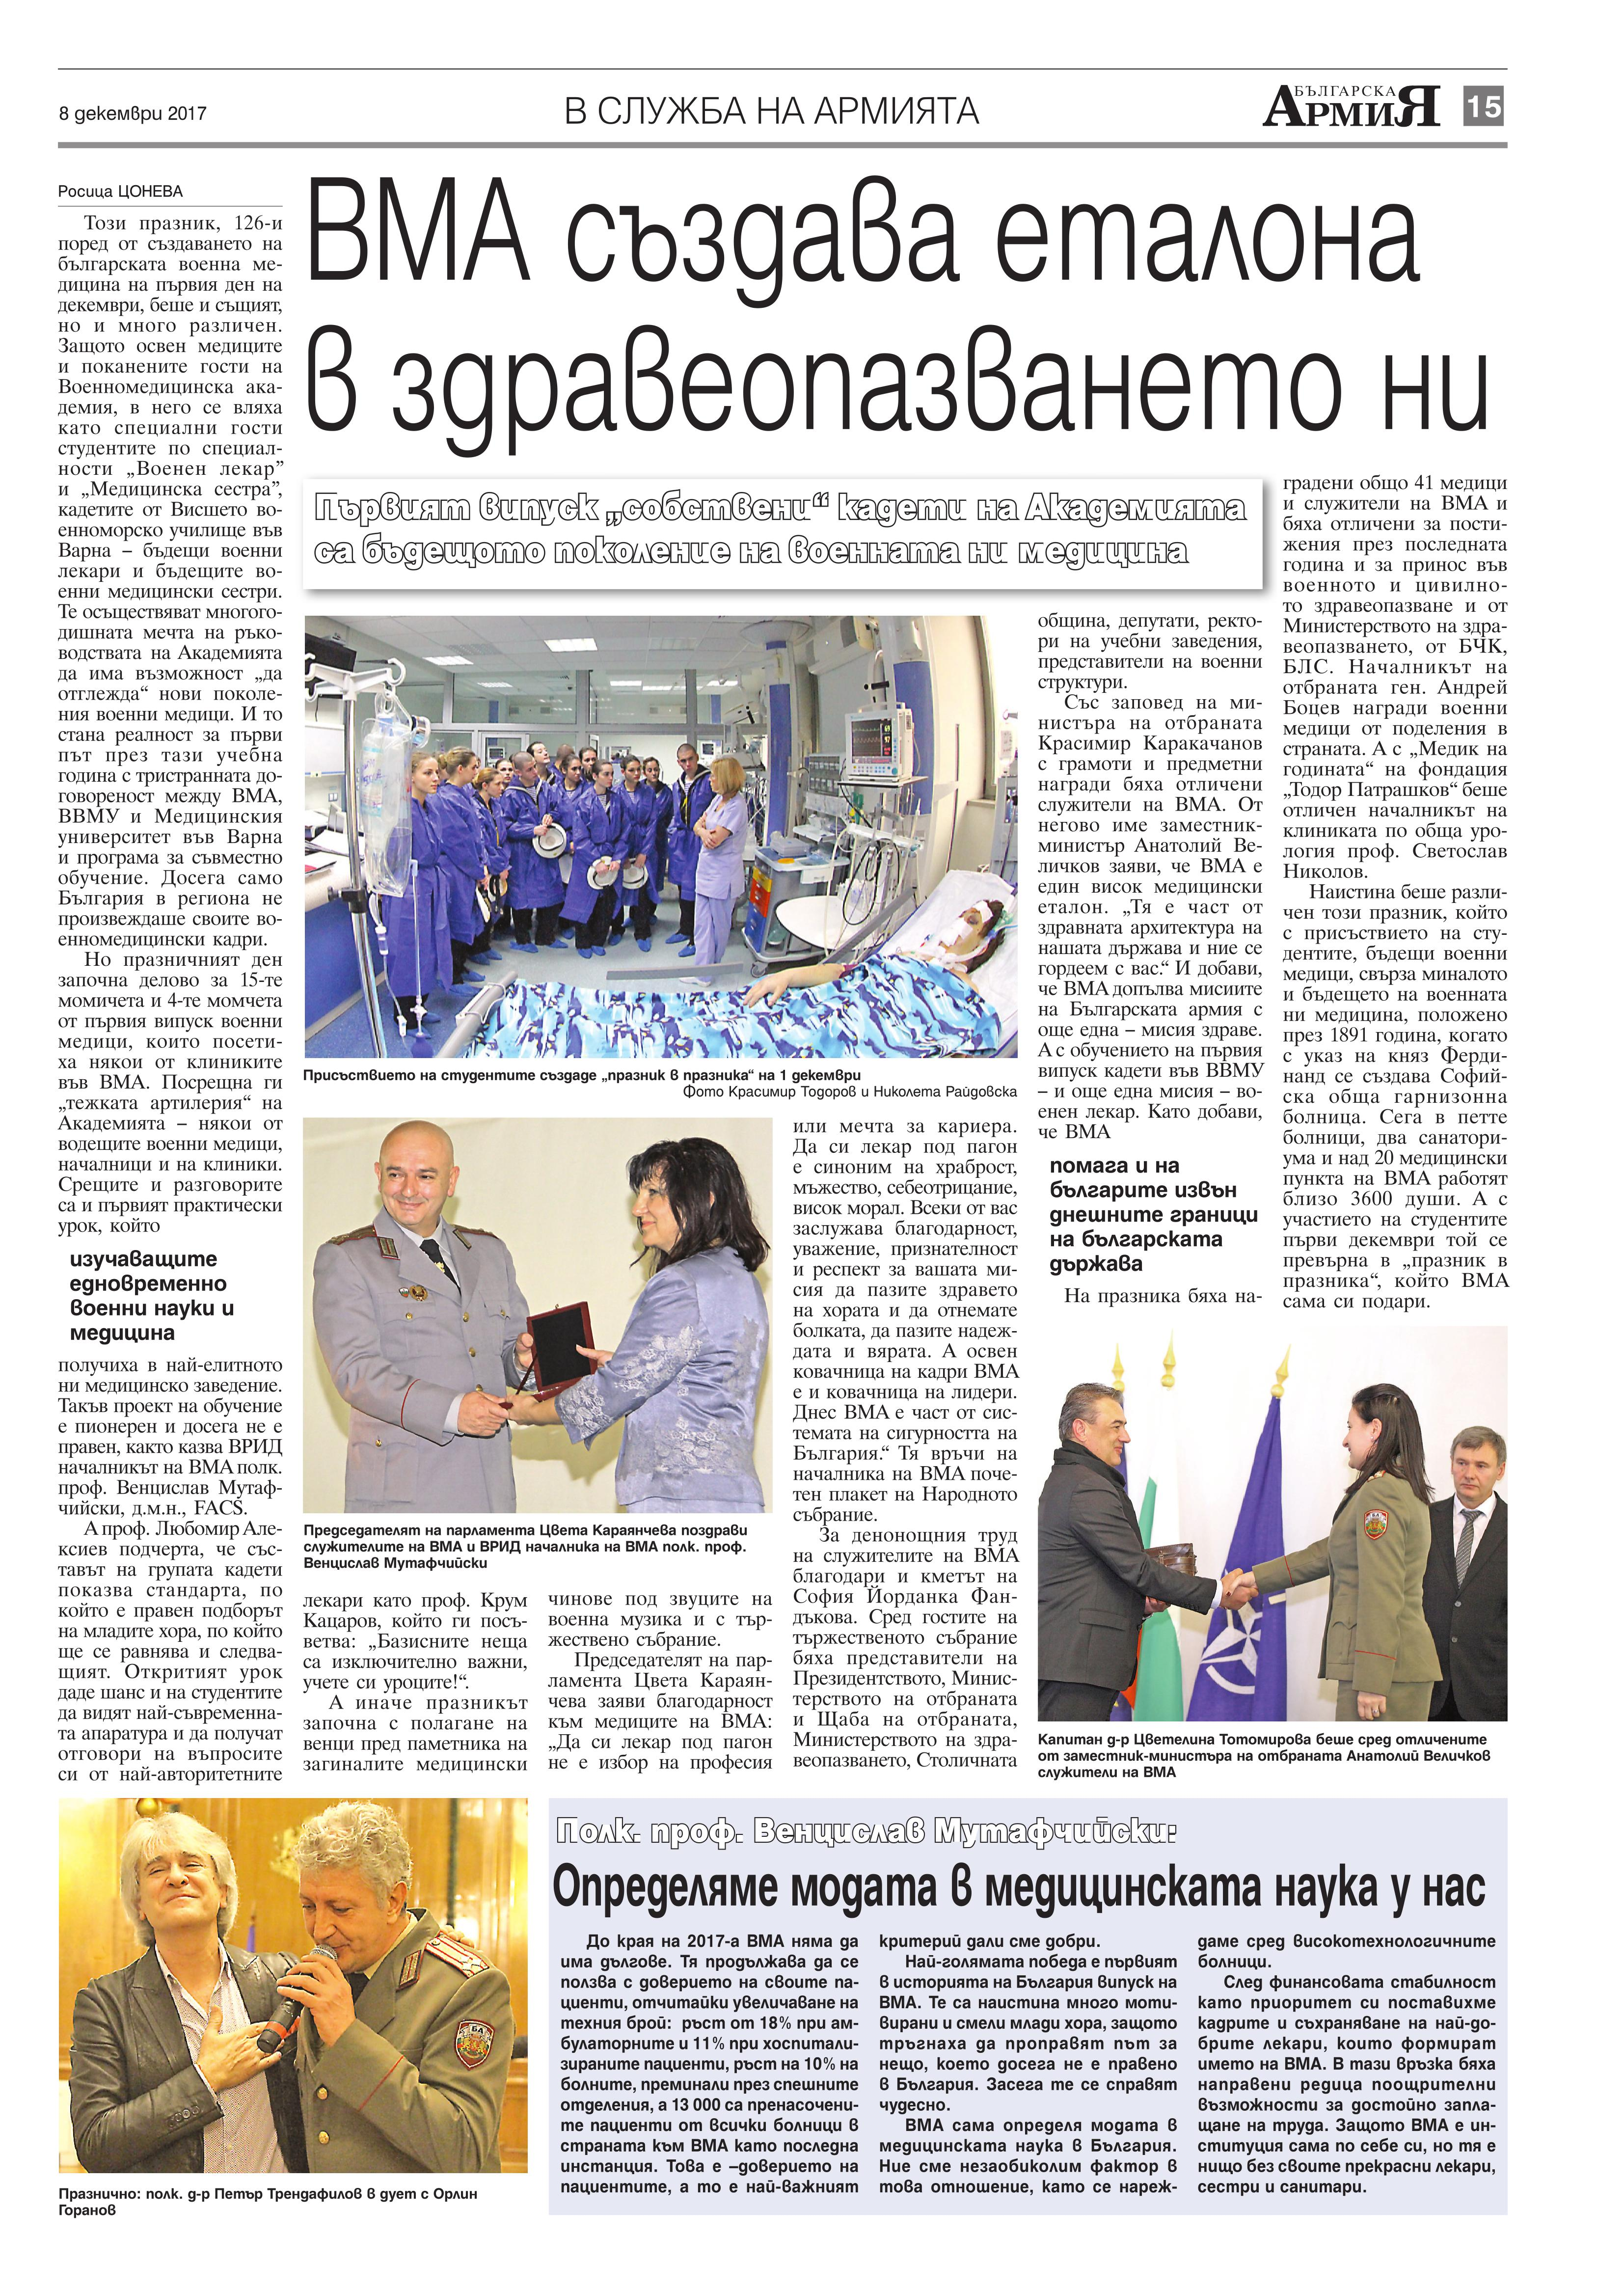 https://armymedia.bg/wp-content/uploads/2015/06/15.page1_-35.jpg